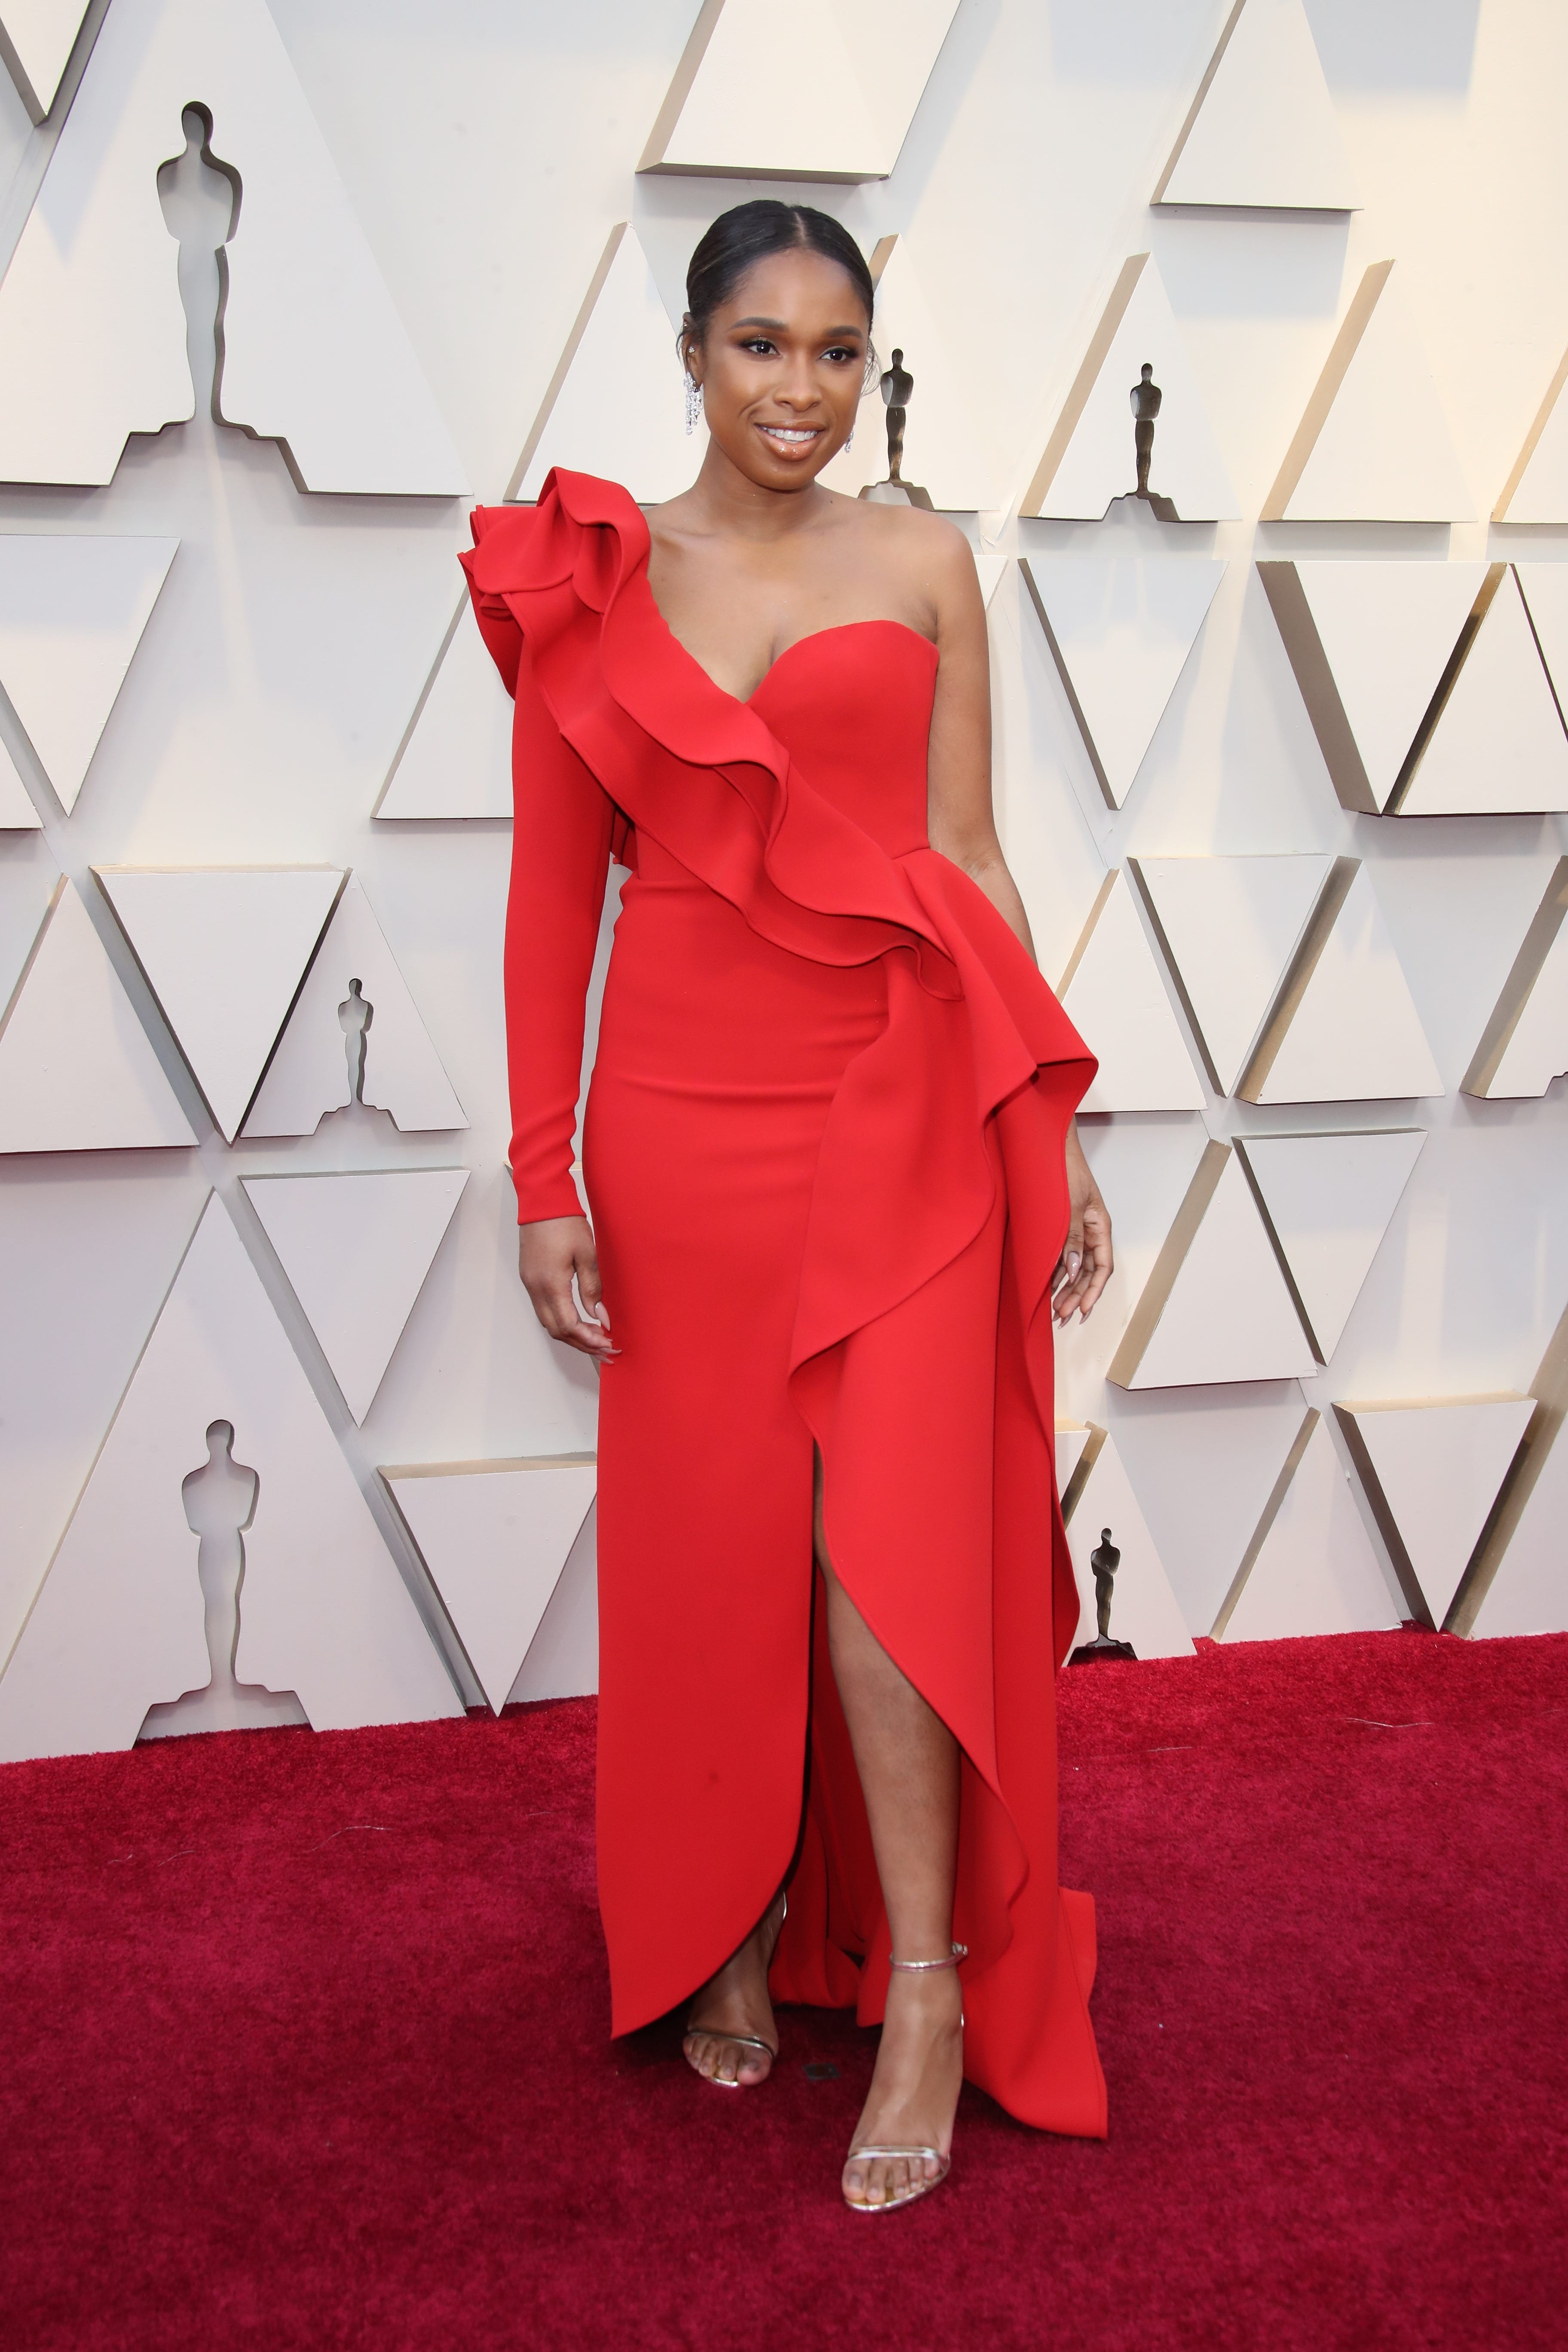 February 24, 2019; Los Angeles, CA, USA; Jennifer Hudson arrives at the 91st Academy Awards at the Dolby Theatre. Mandatory Credit: Dan MacMedan-USA TODAY NETWORK (Via OlyDrop)